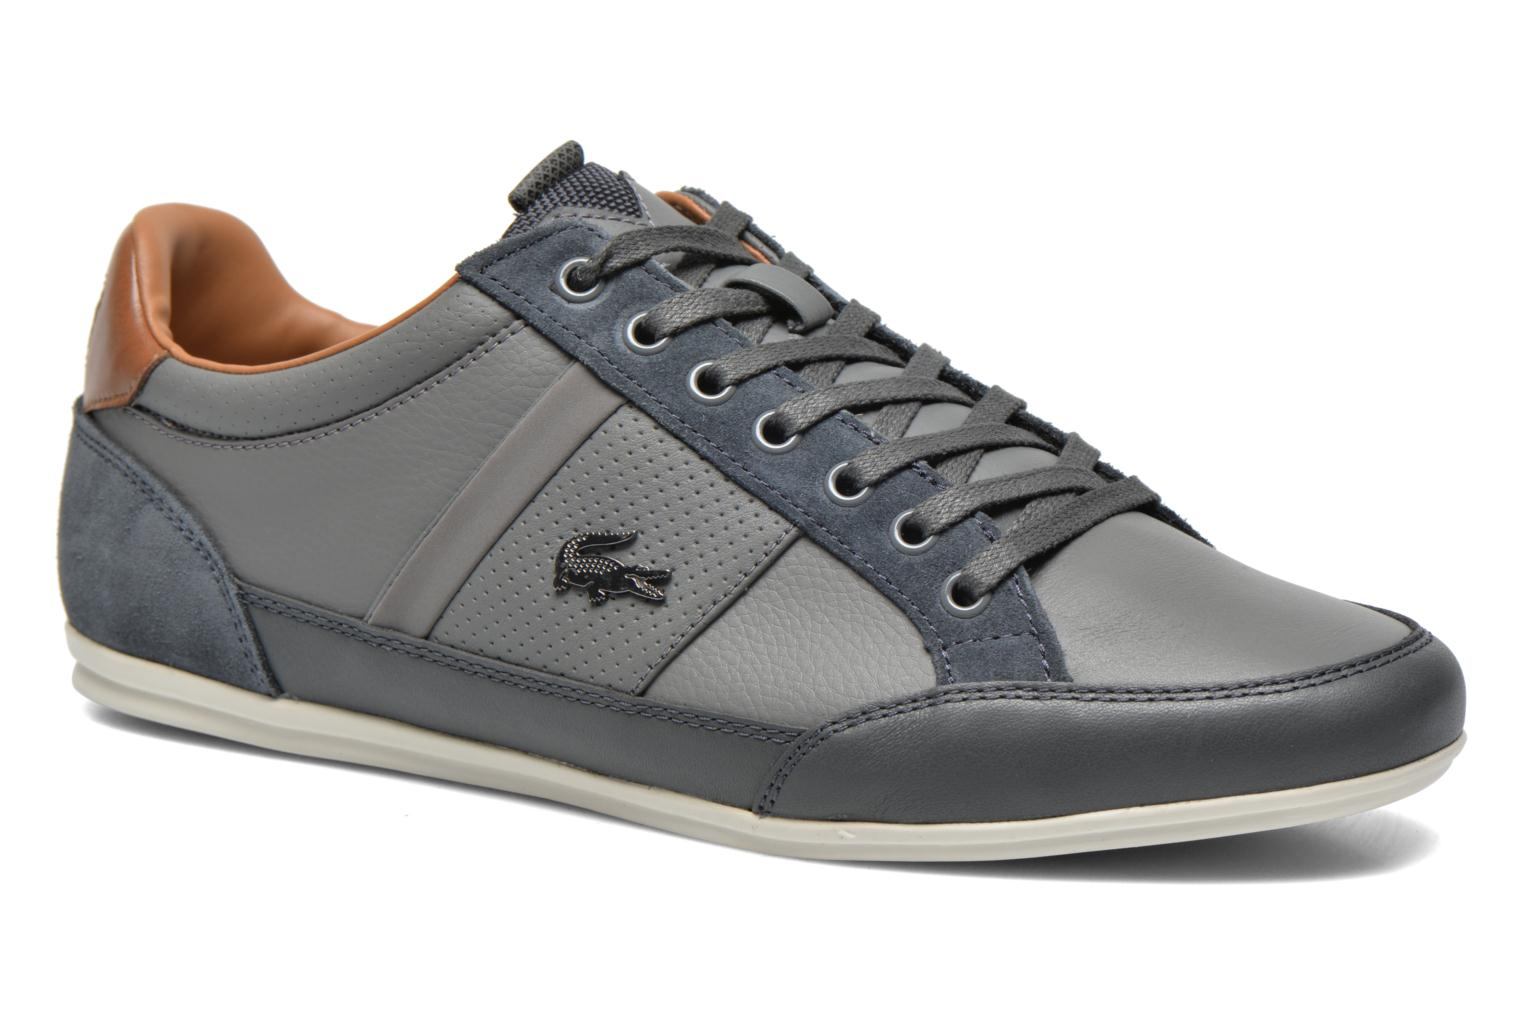 Chaymon Prm2 Light Grey/Dark Grey